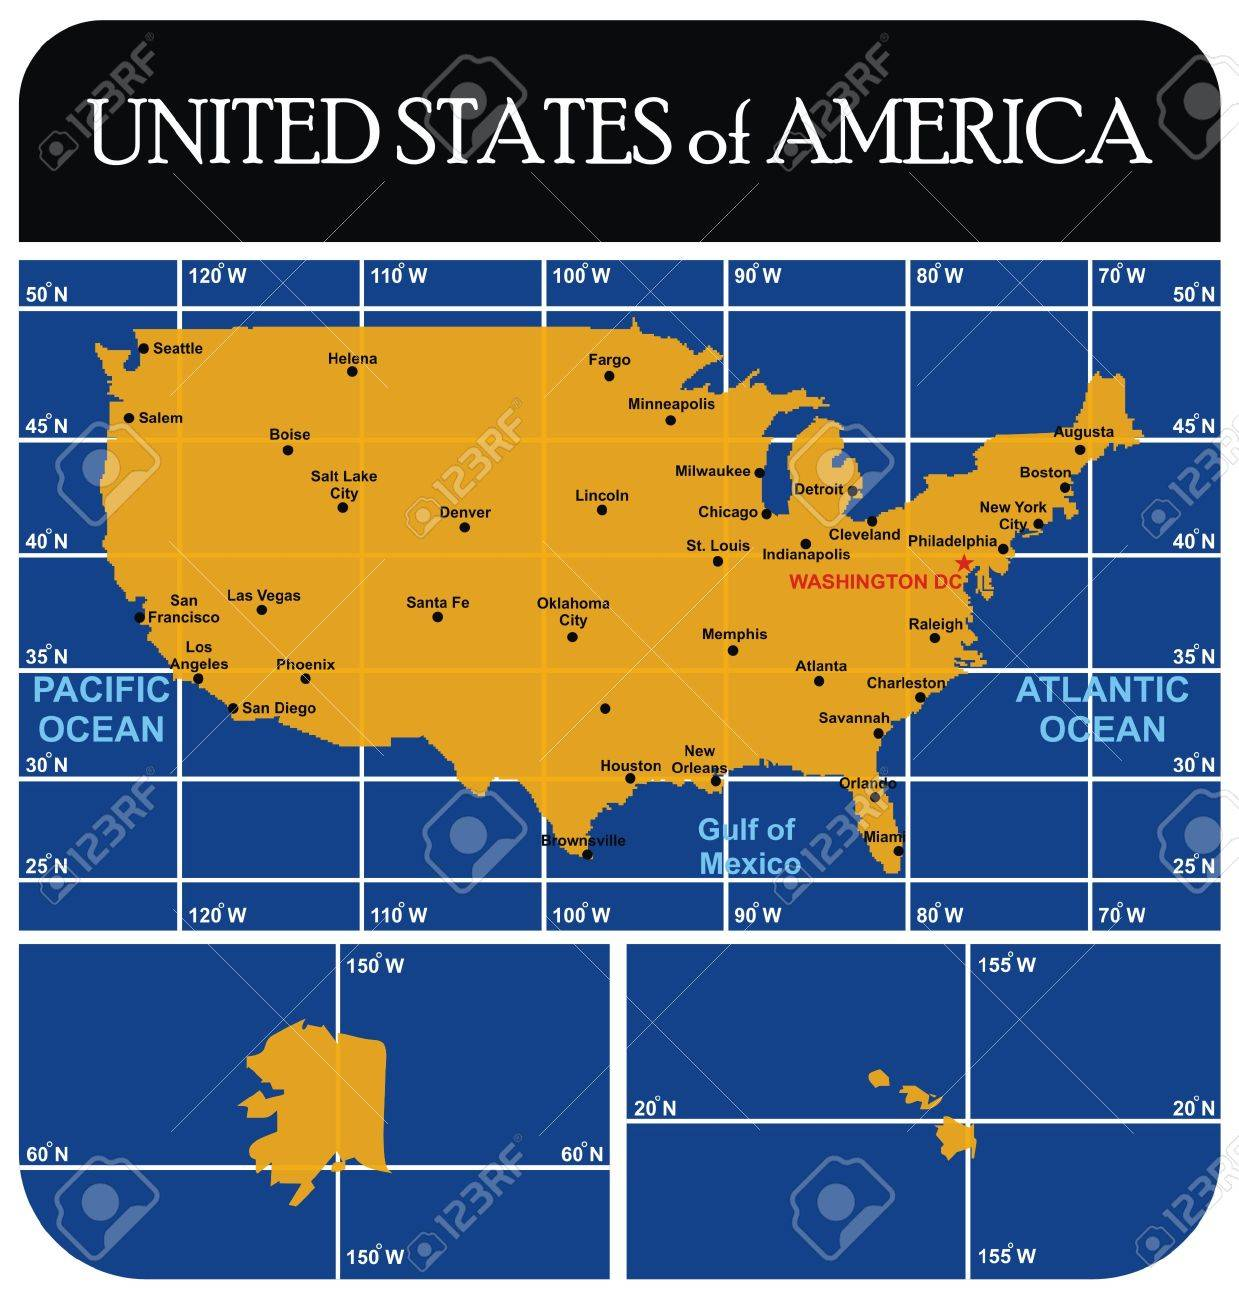 United States of America USA Map with all major cities